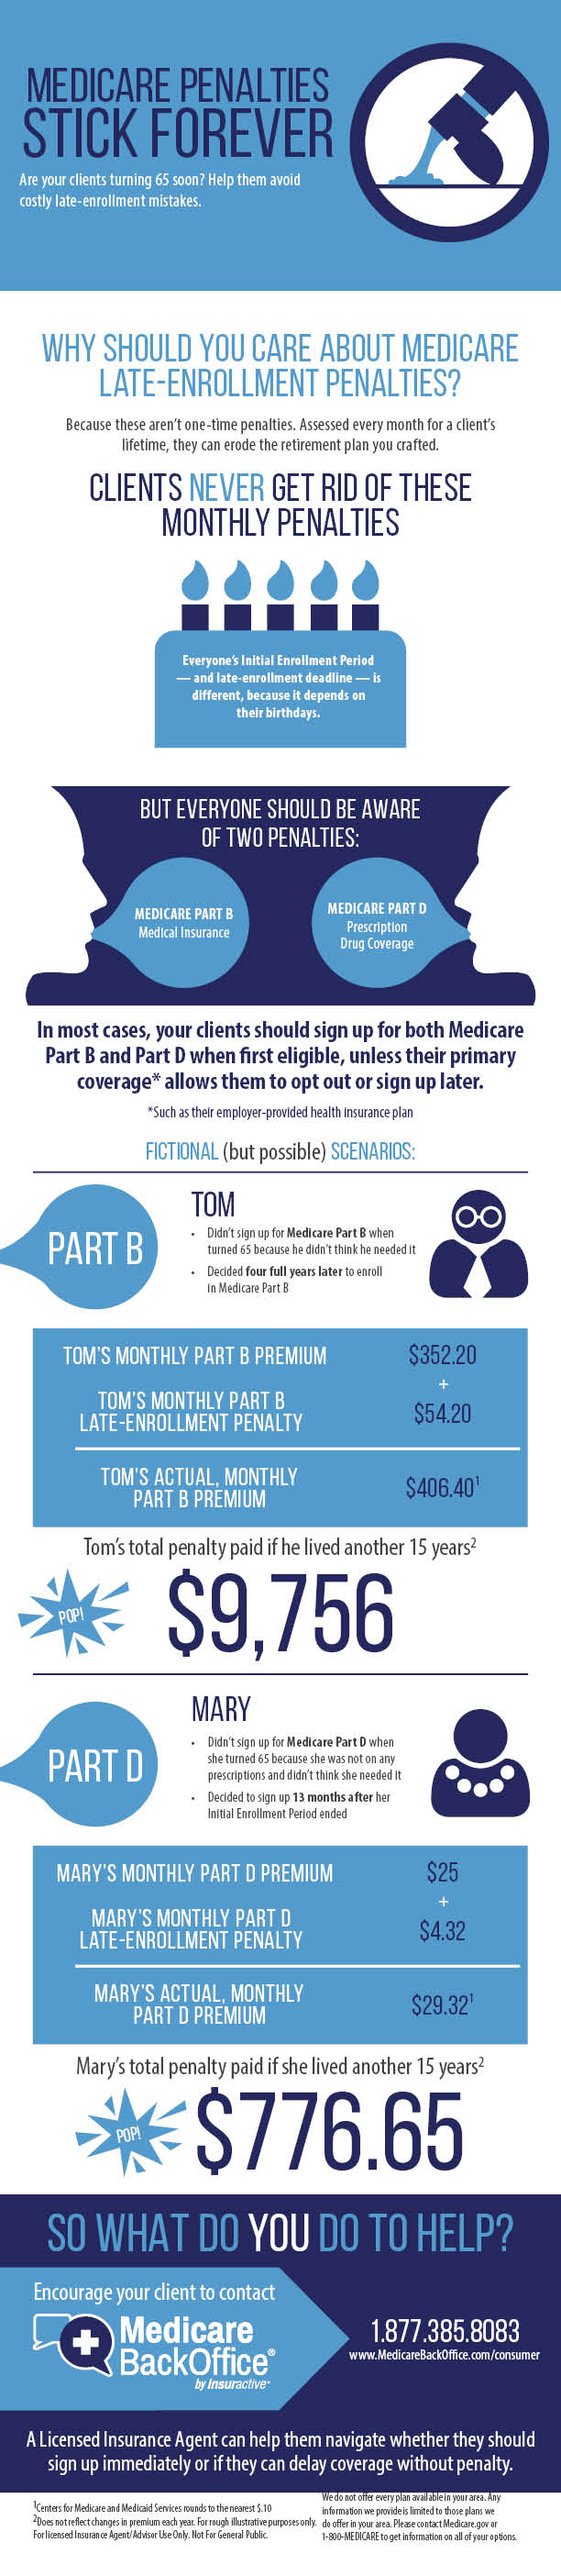 Medicare Back Office Medicare Penalties Infographic